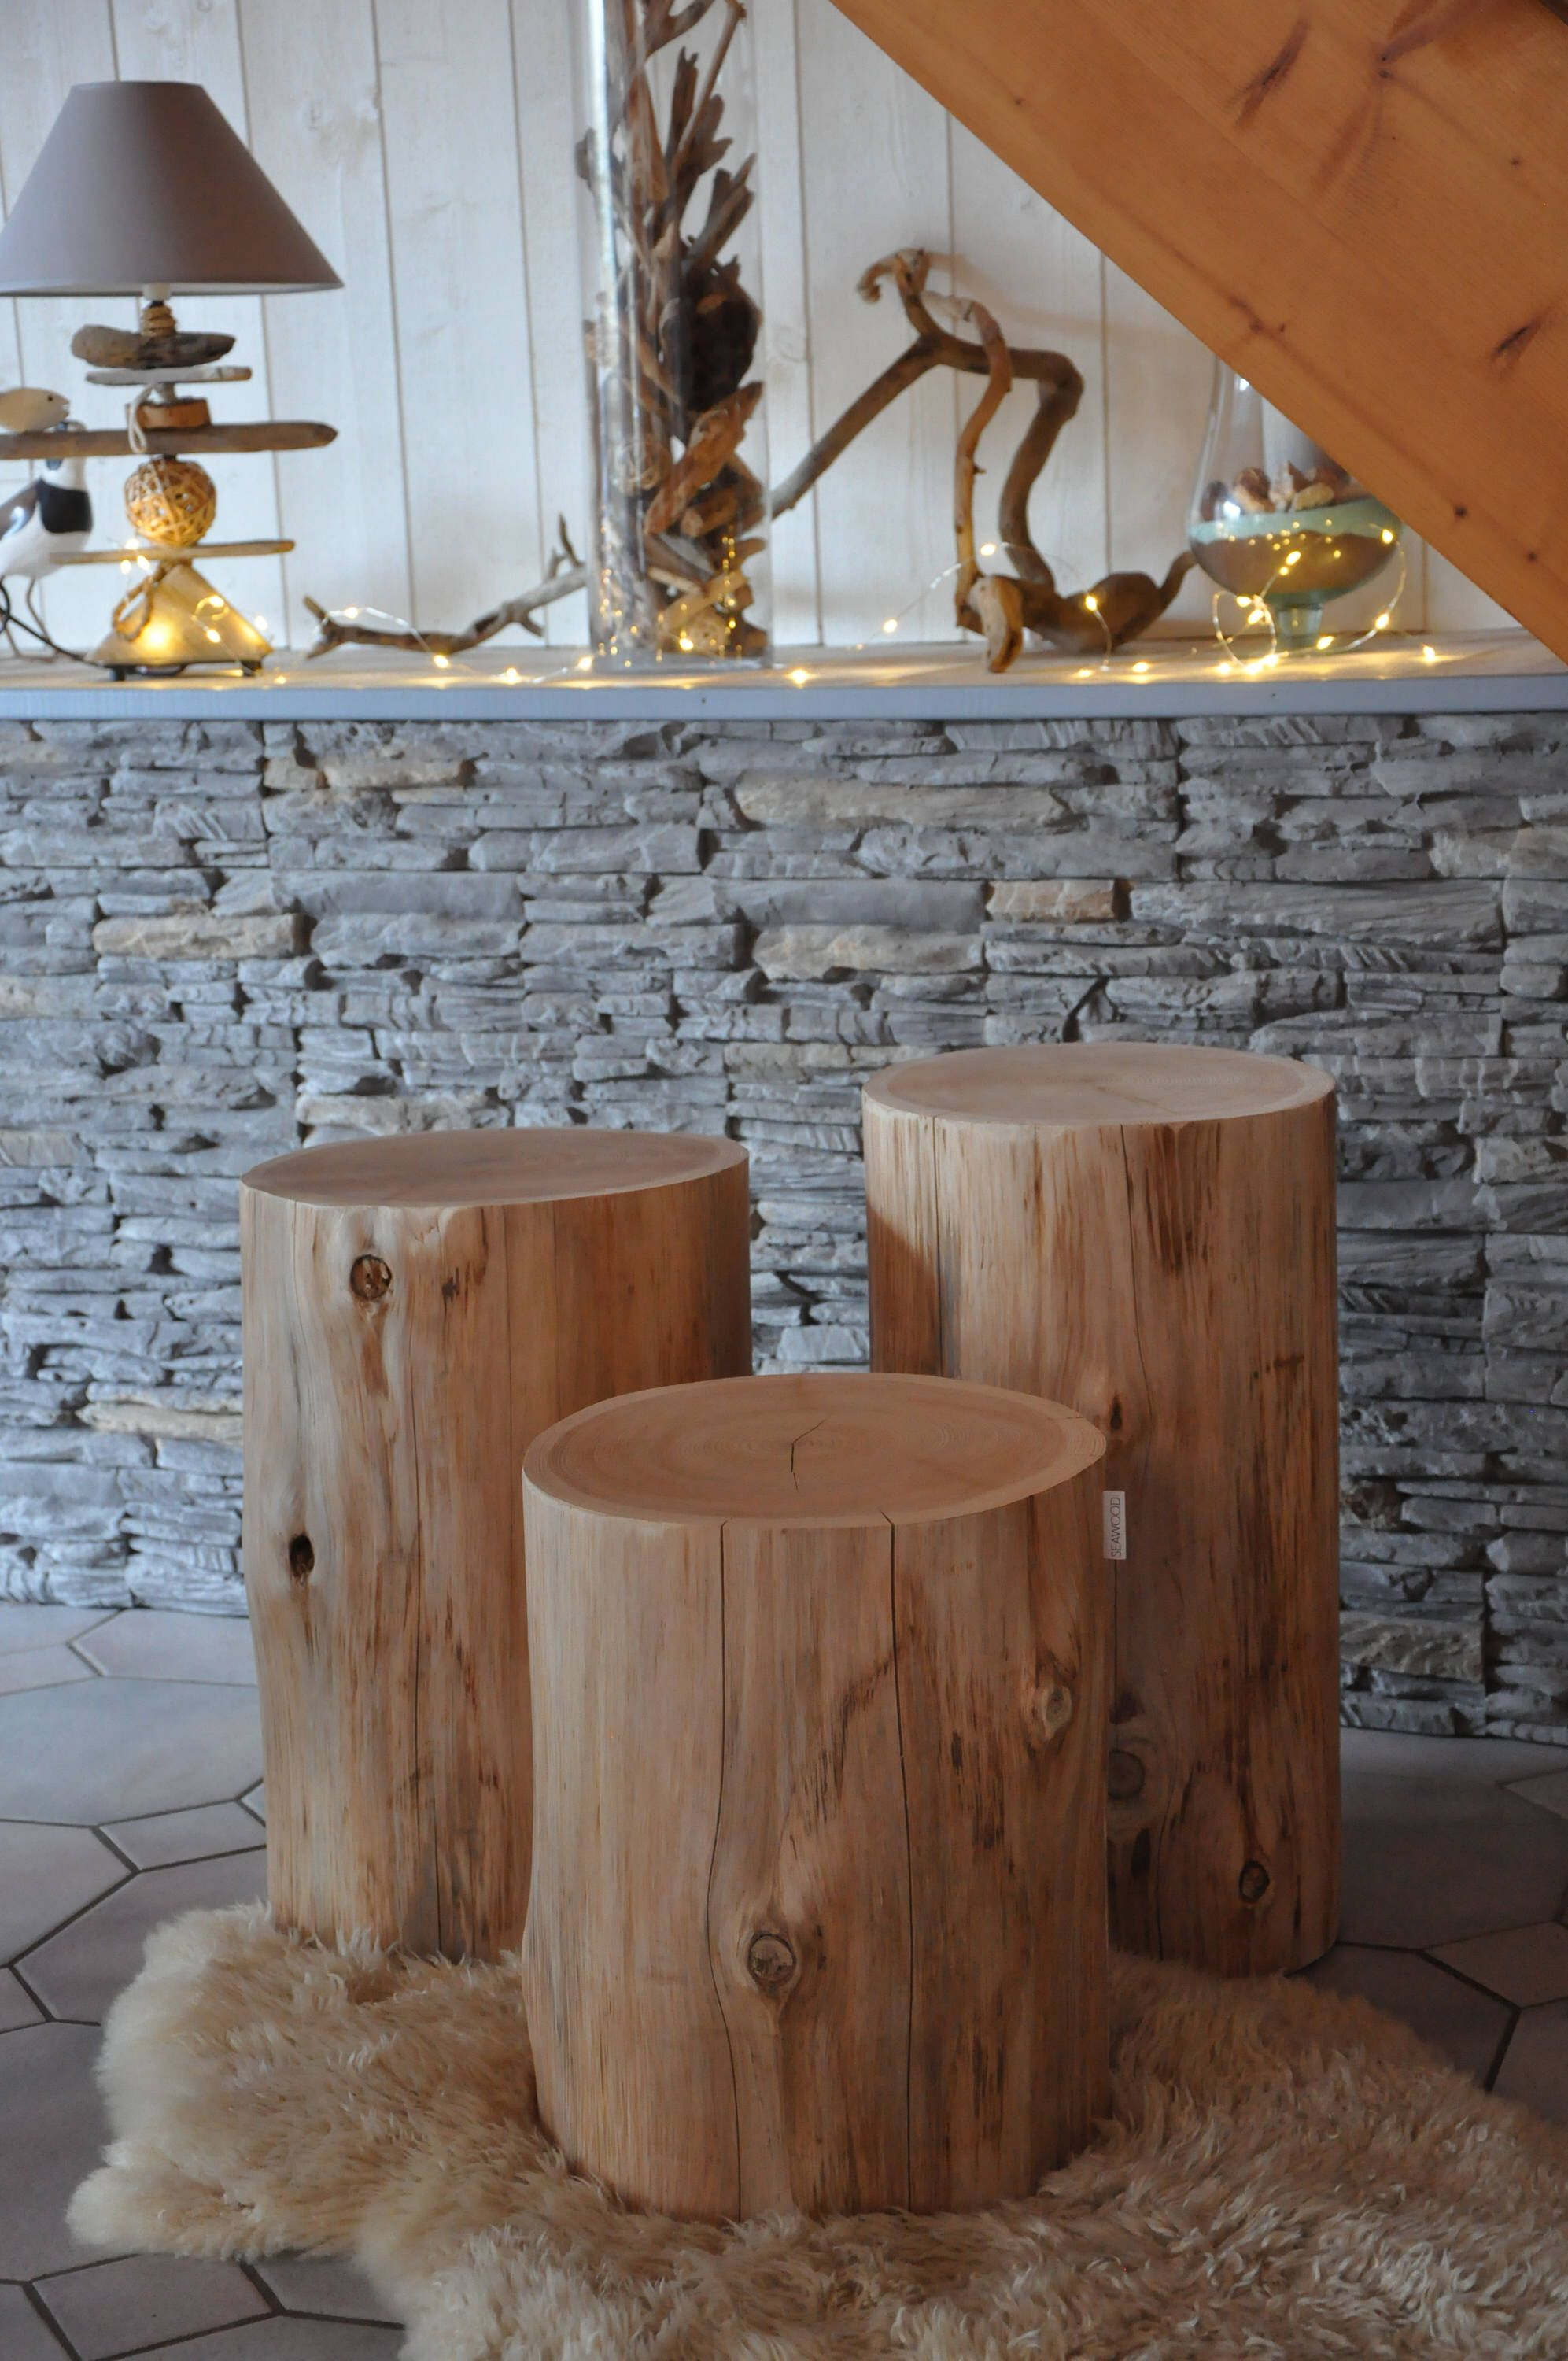 Set Of 3 Tables Tree Trunk Wood Side Table Stool Log End Table Tree Stump Table Bedside Table Coffee Ta Tree Trunk Table Side Table Wood Tree Stump Table [ 3000 x 1993 Pixel ]